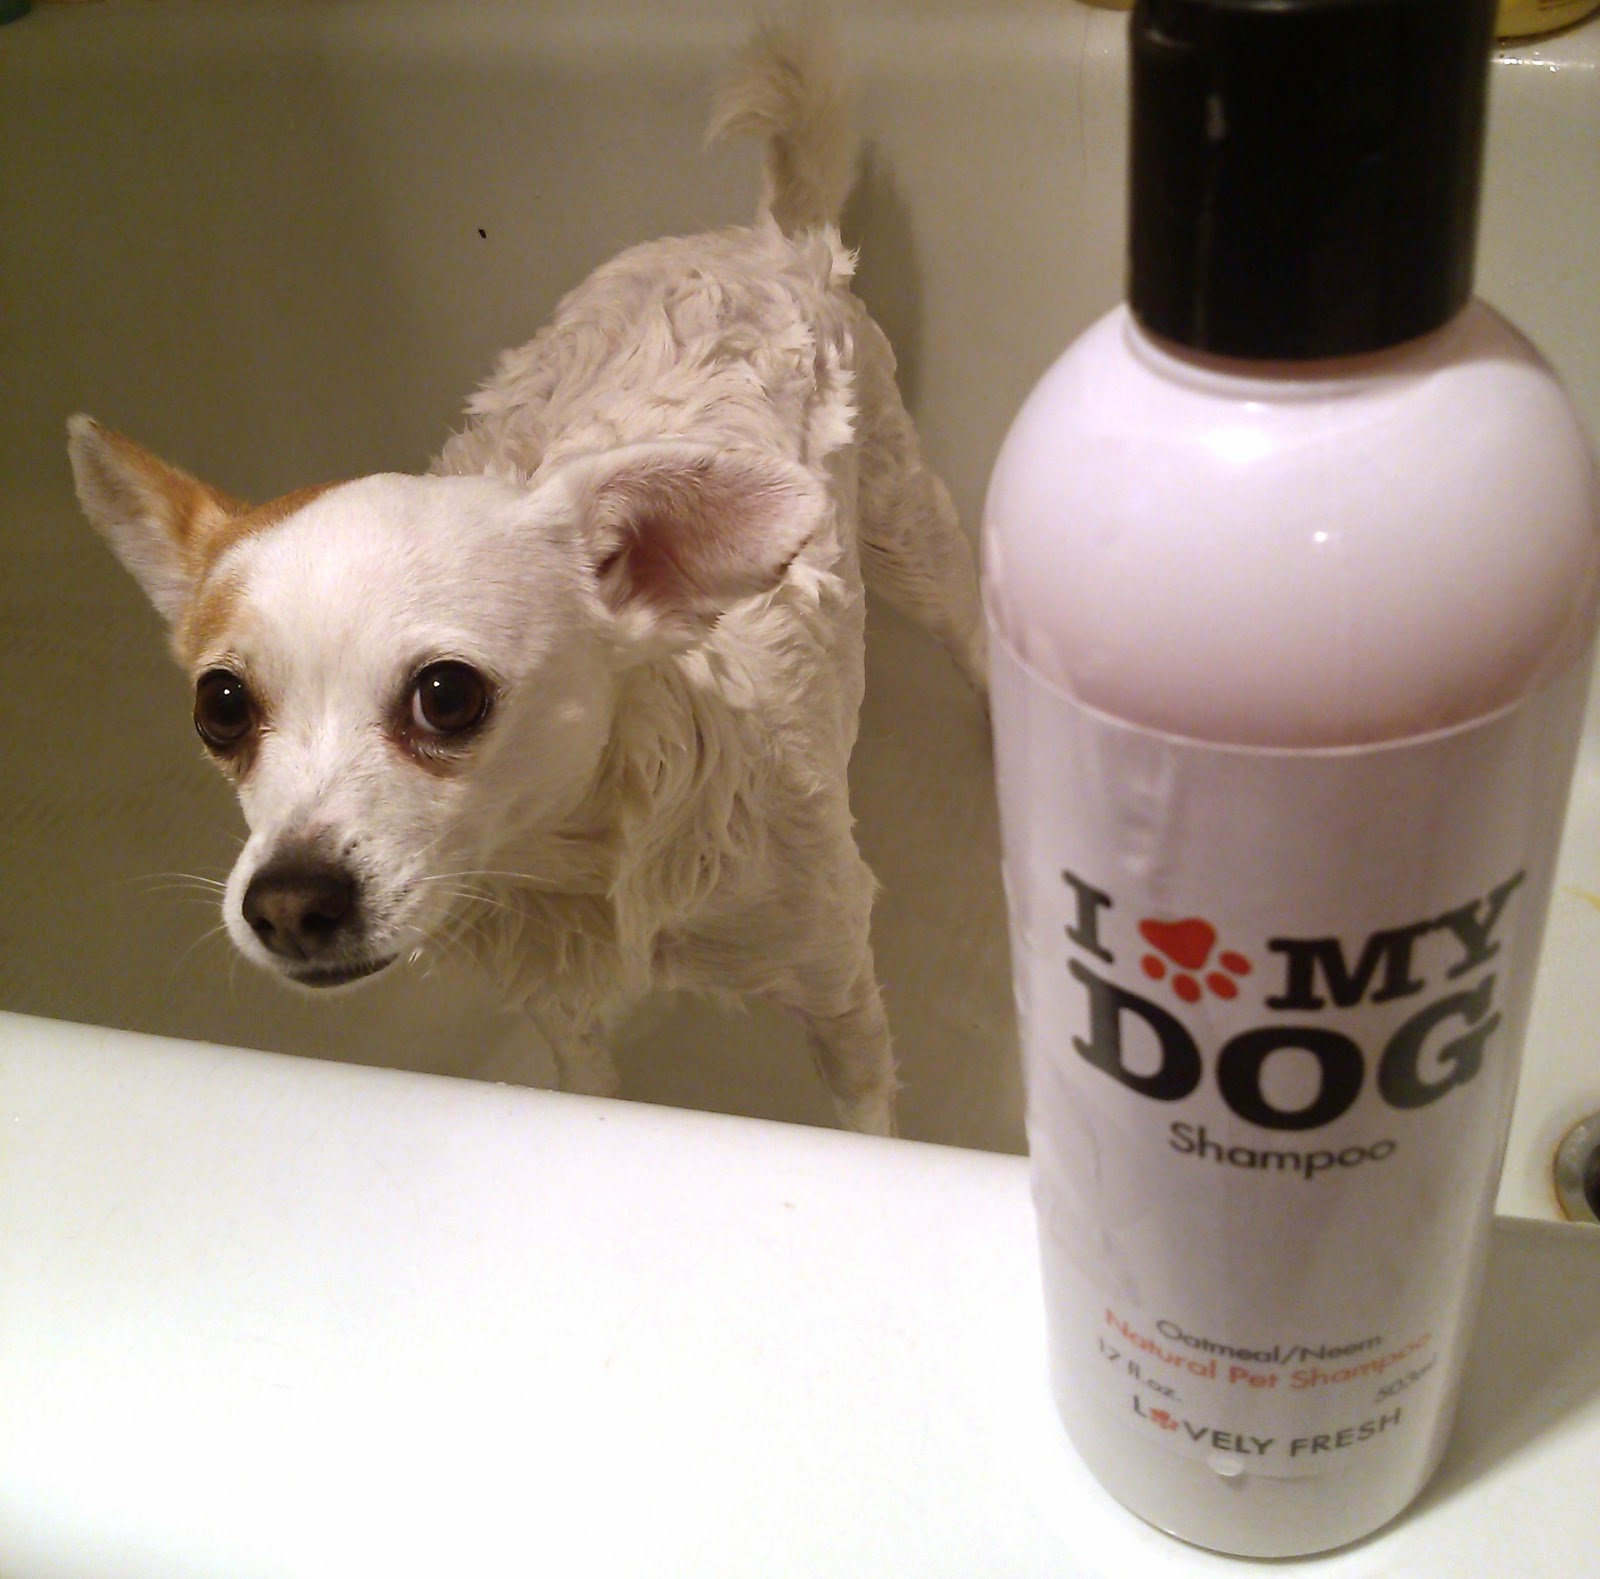 I Love My Dog Shampoo by Lovely Fresh Review